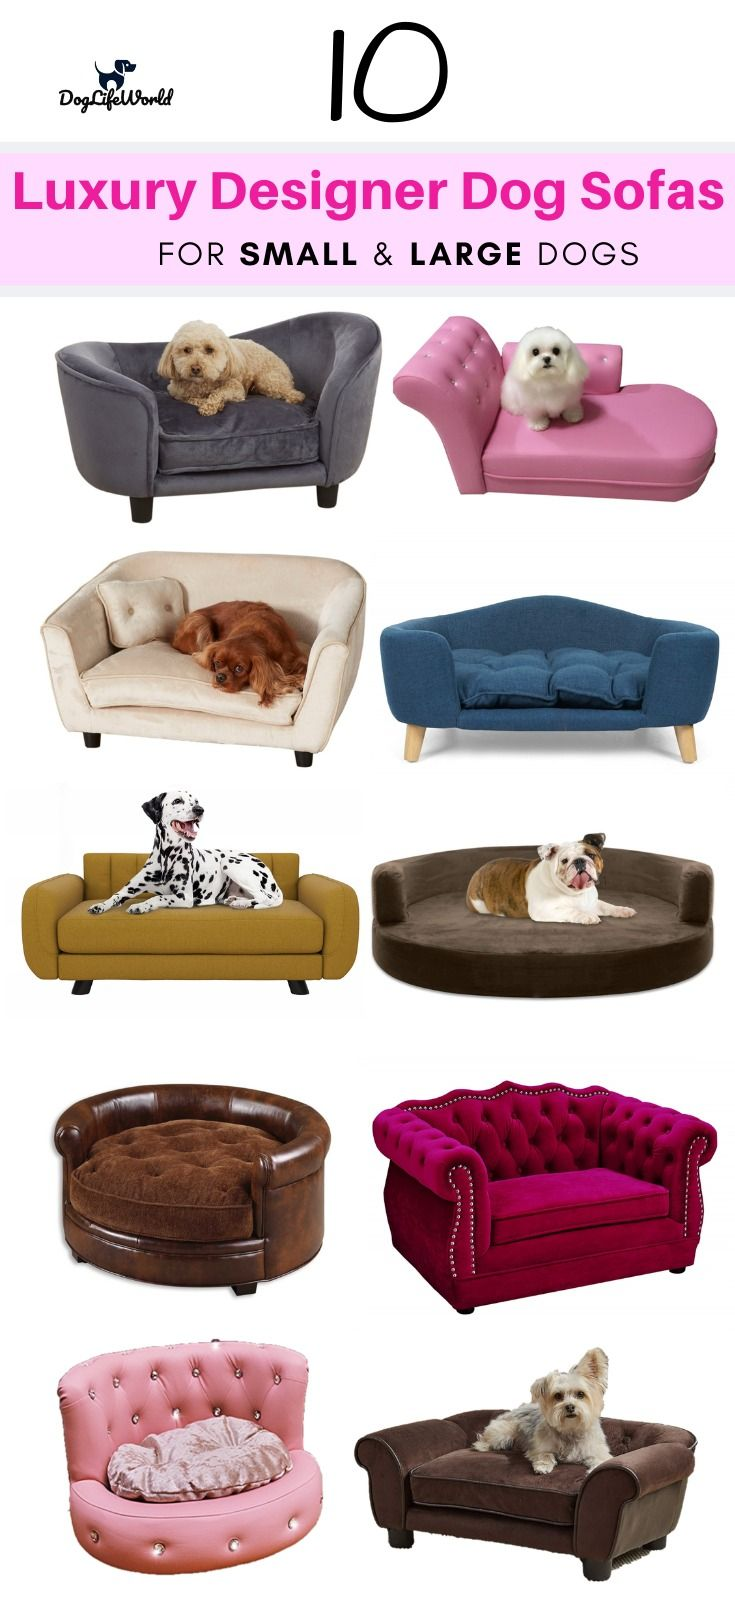 Top 10 Dog Sofa Beds On Amazon Luxury Dog Couch Dog Sofa Bed